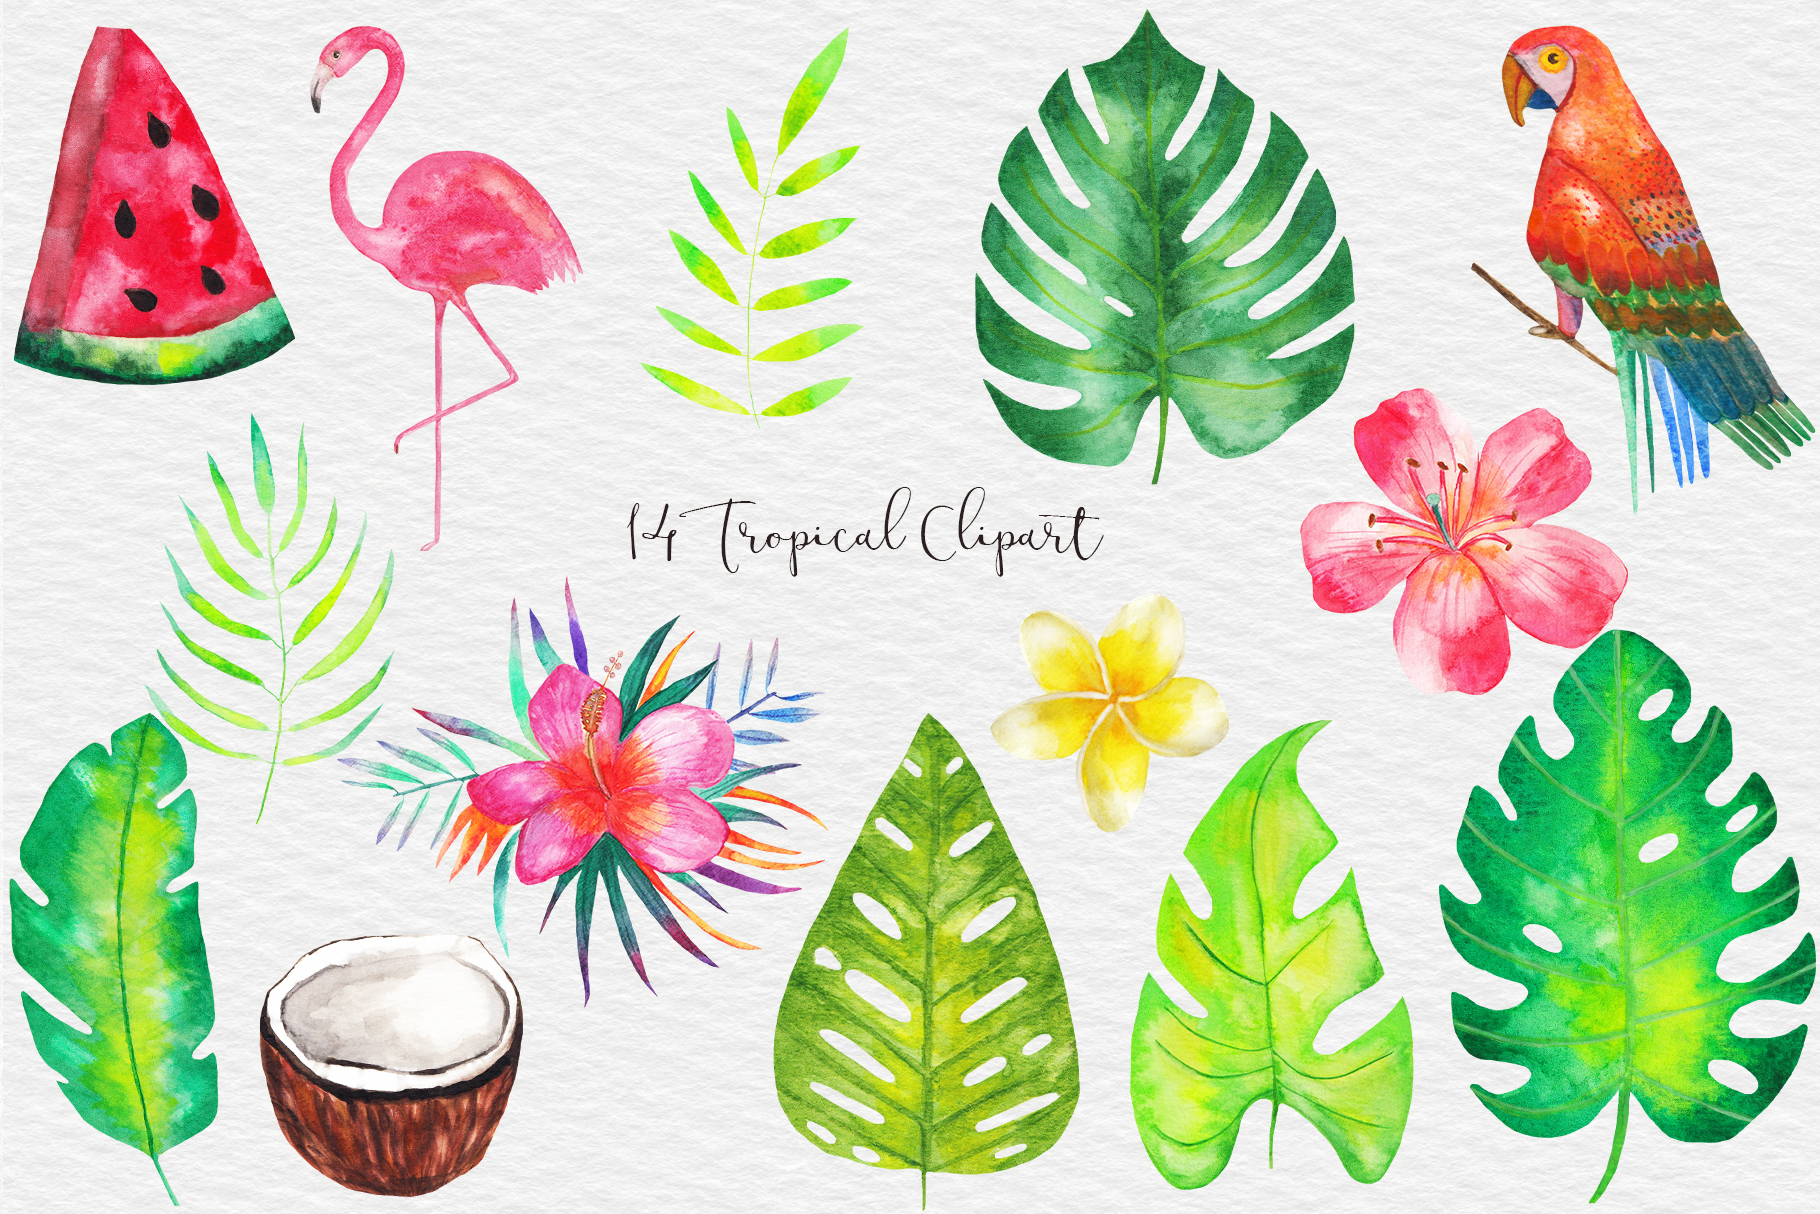 Watercolor Tropical Clipart, Tropical Seamless Patterns example image 2